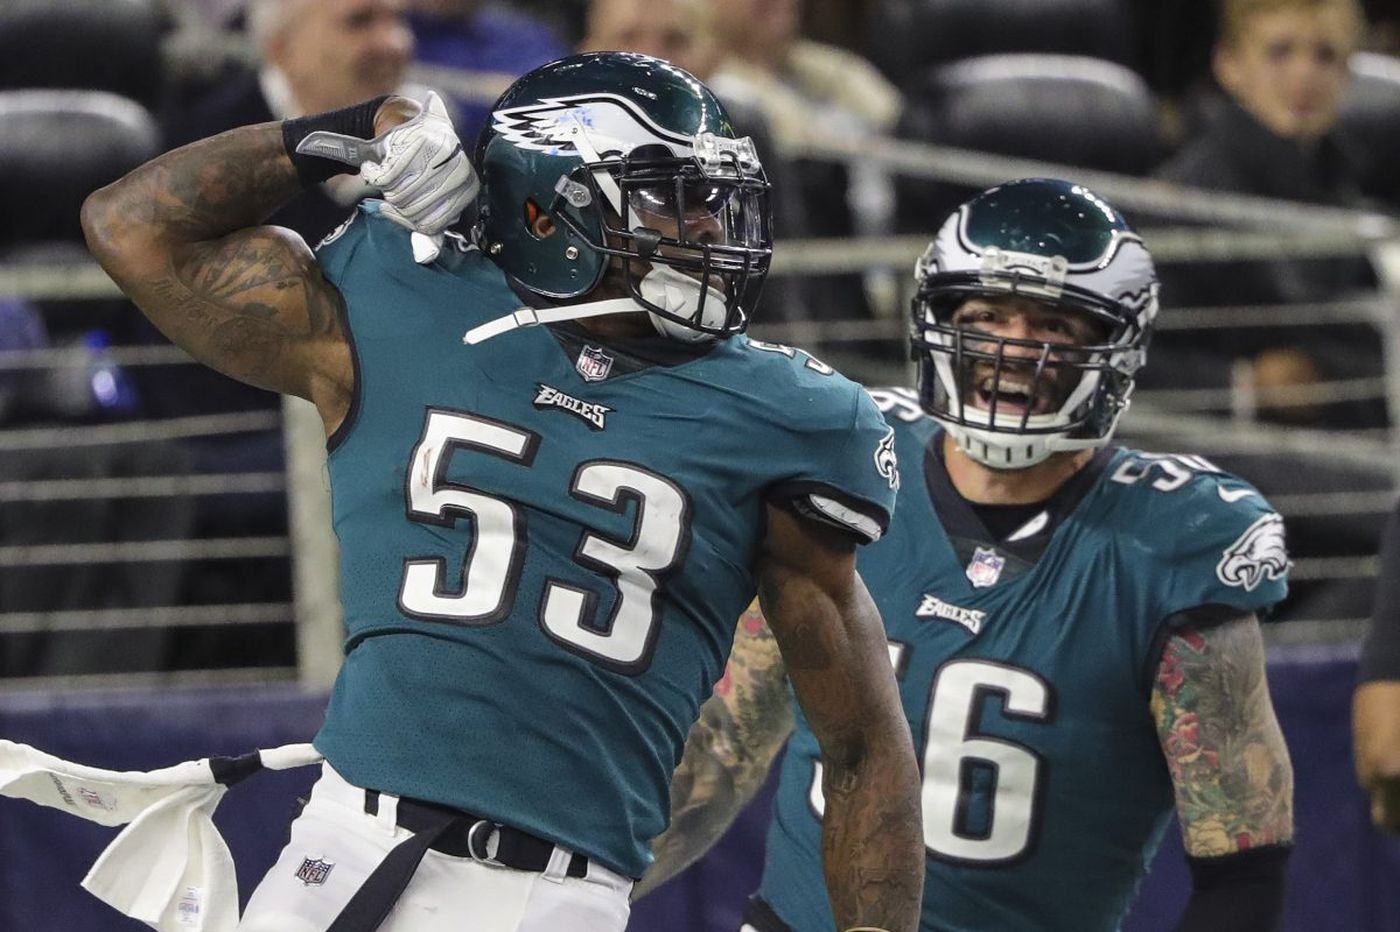 With the combine over, Eagles' attention shifts to roster changes | Early Birds